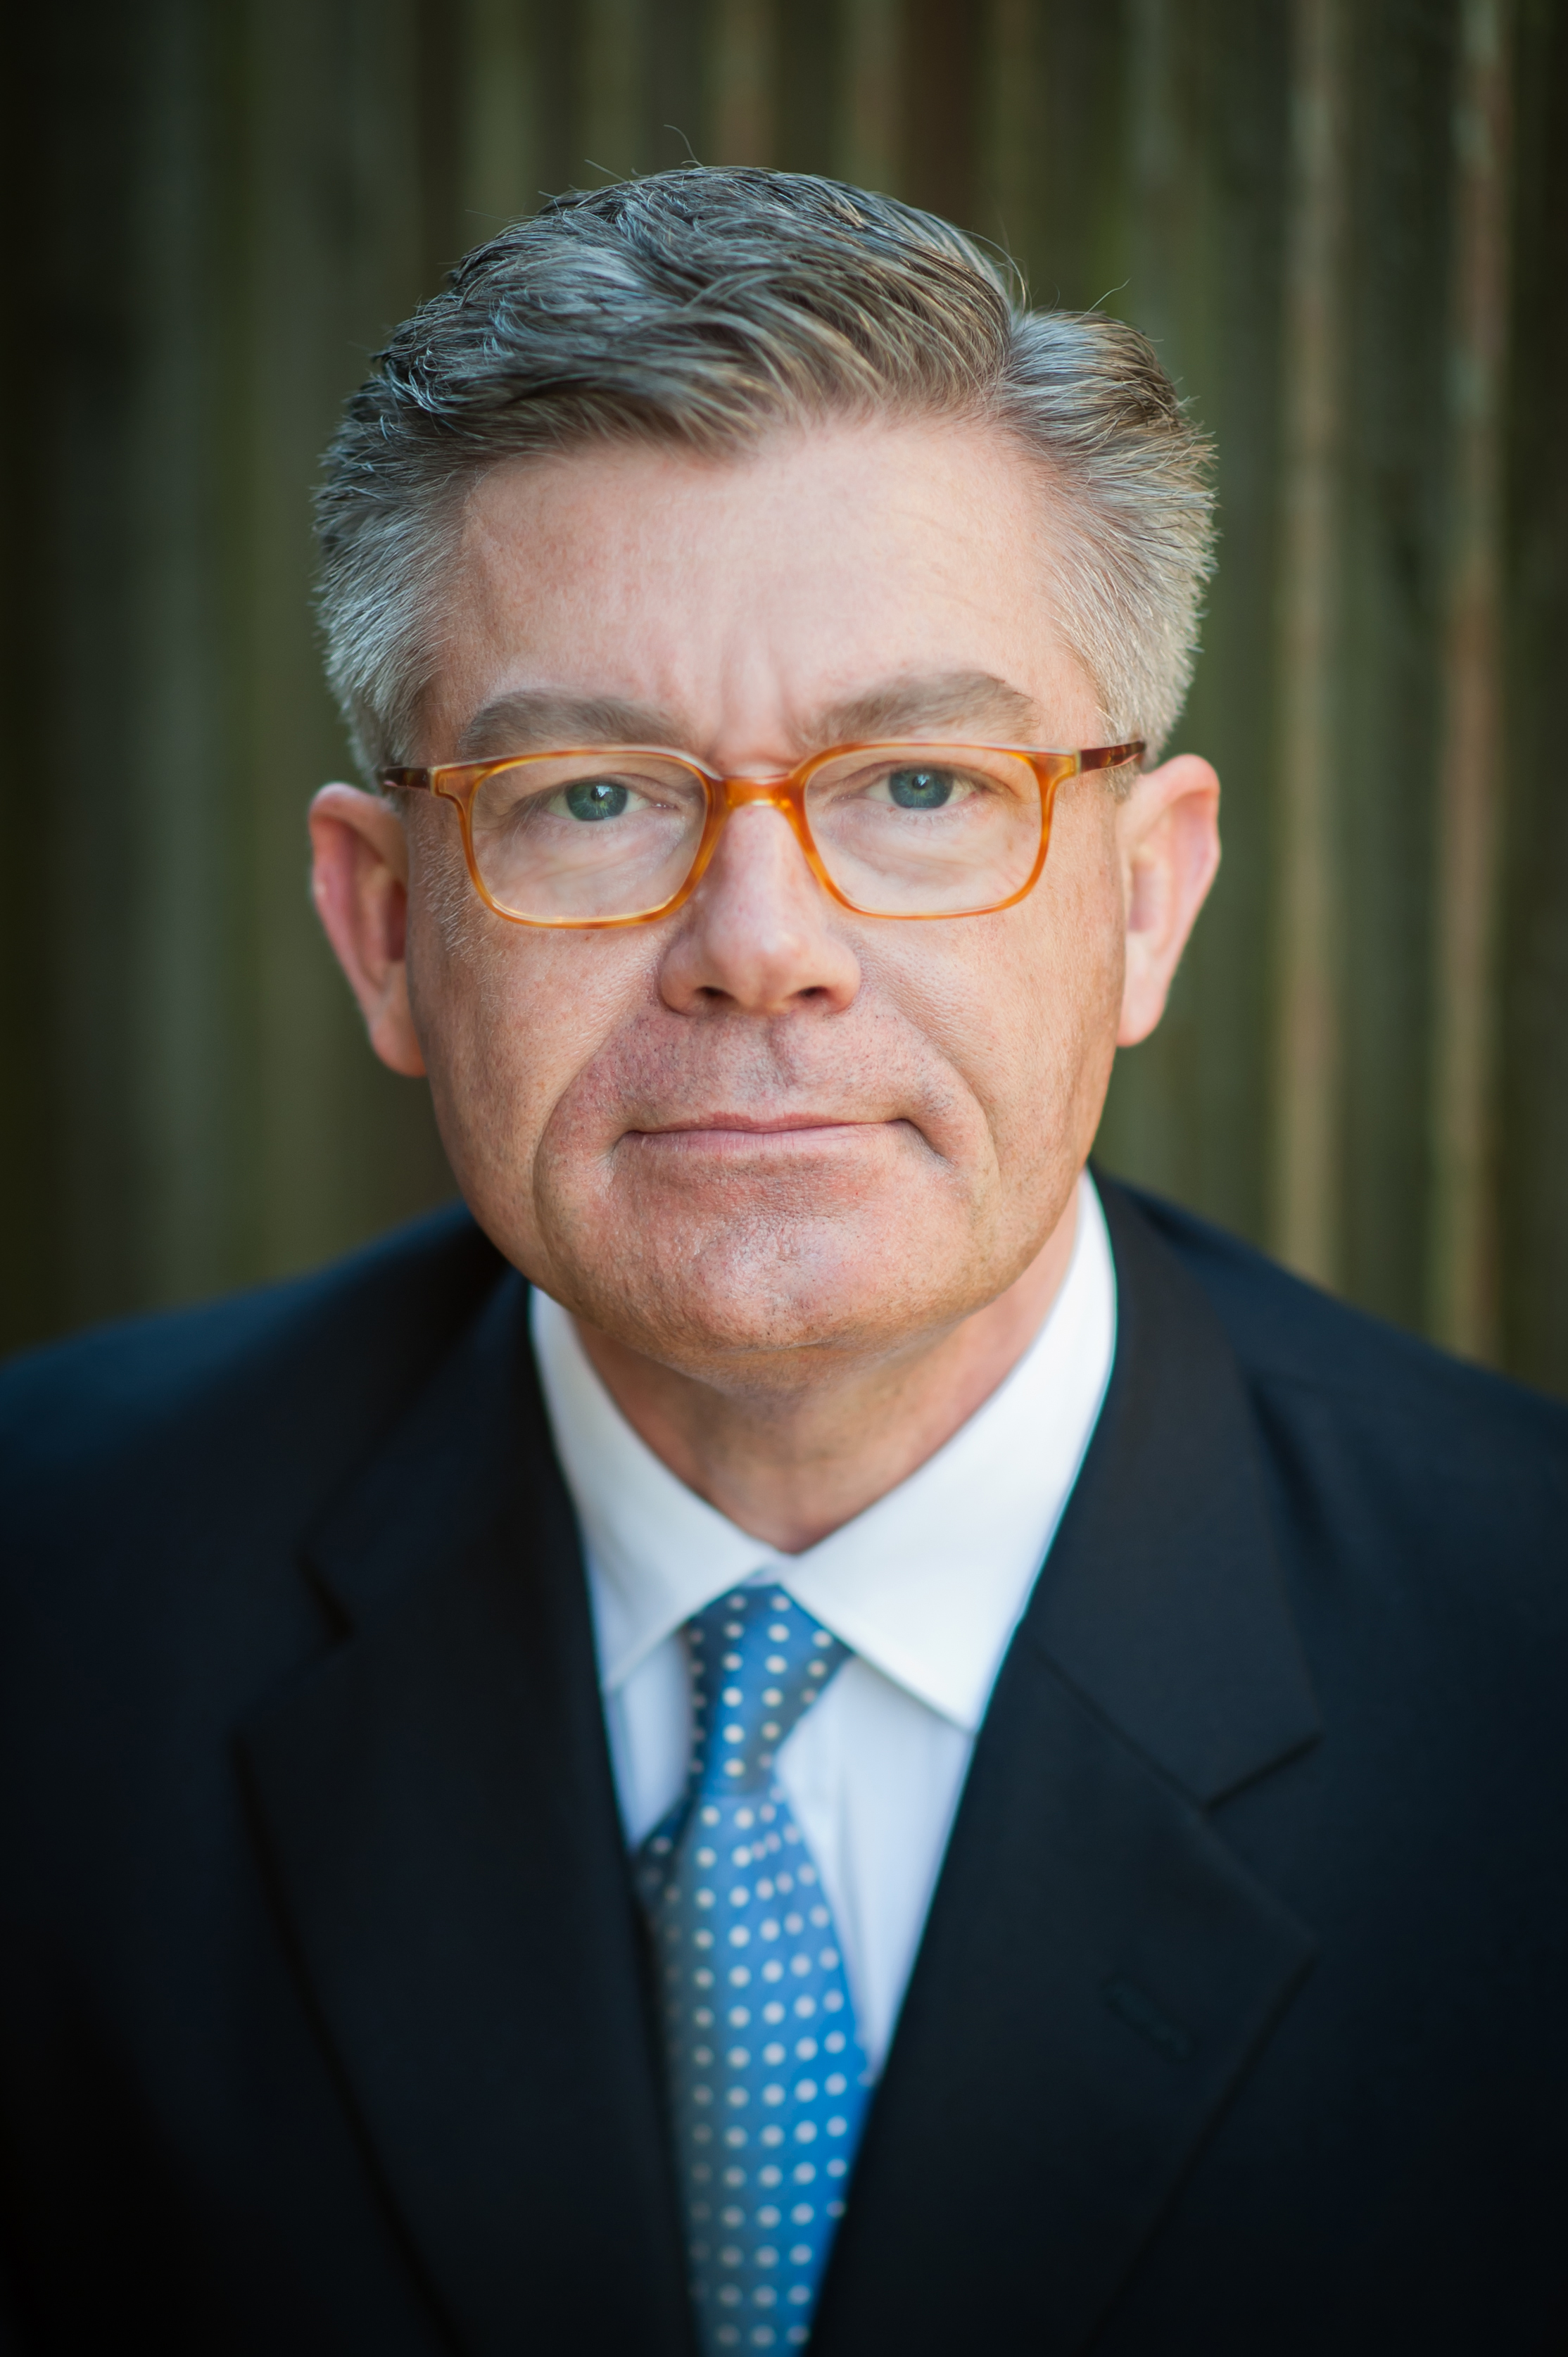 Judge Malcolm Simmons, acclaimed international judge and lawyer